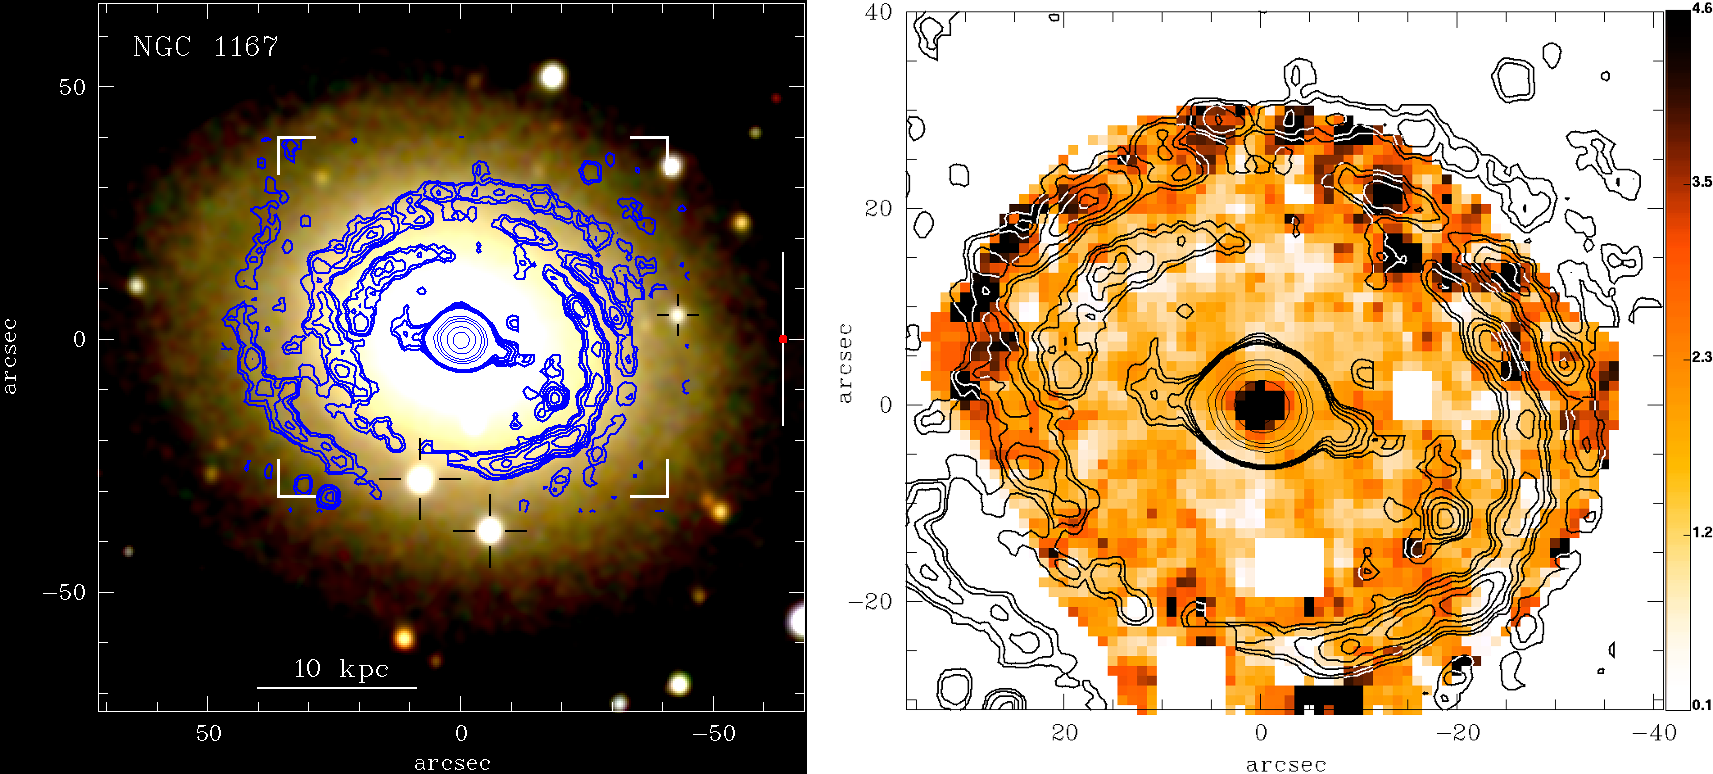 """Figure 1: True colour image of galaxy NGC1167, overlaid with contours depicting the spiral-like star-forming regions (left).  """"Intensity"""" of the Equivalent Width in H-alpha in galaxy NGC1167, overlaid with contours depicting the spiral-like star-forming regions (right). Illustration credits: Gomes et al. (2016)."""